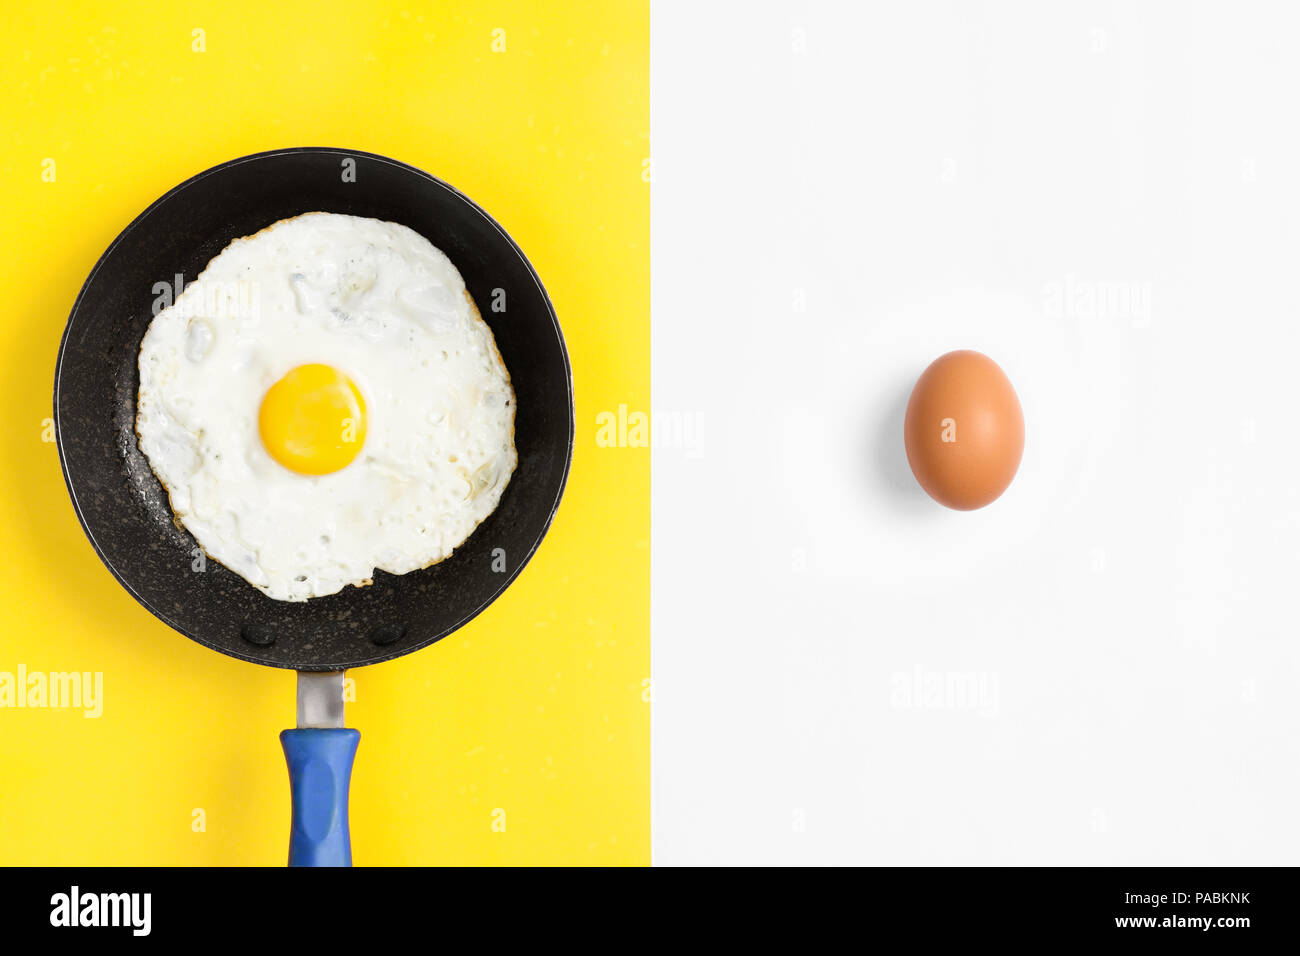 Split color flat lay image with cooked and uncooked egg. - Stock Image